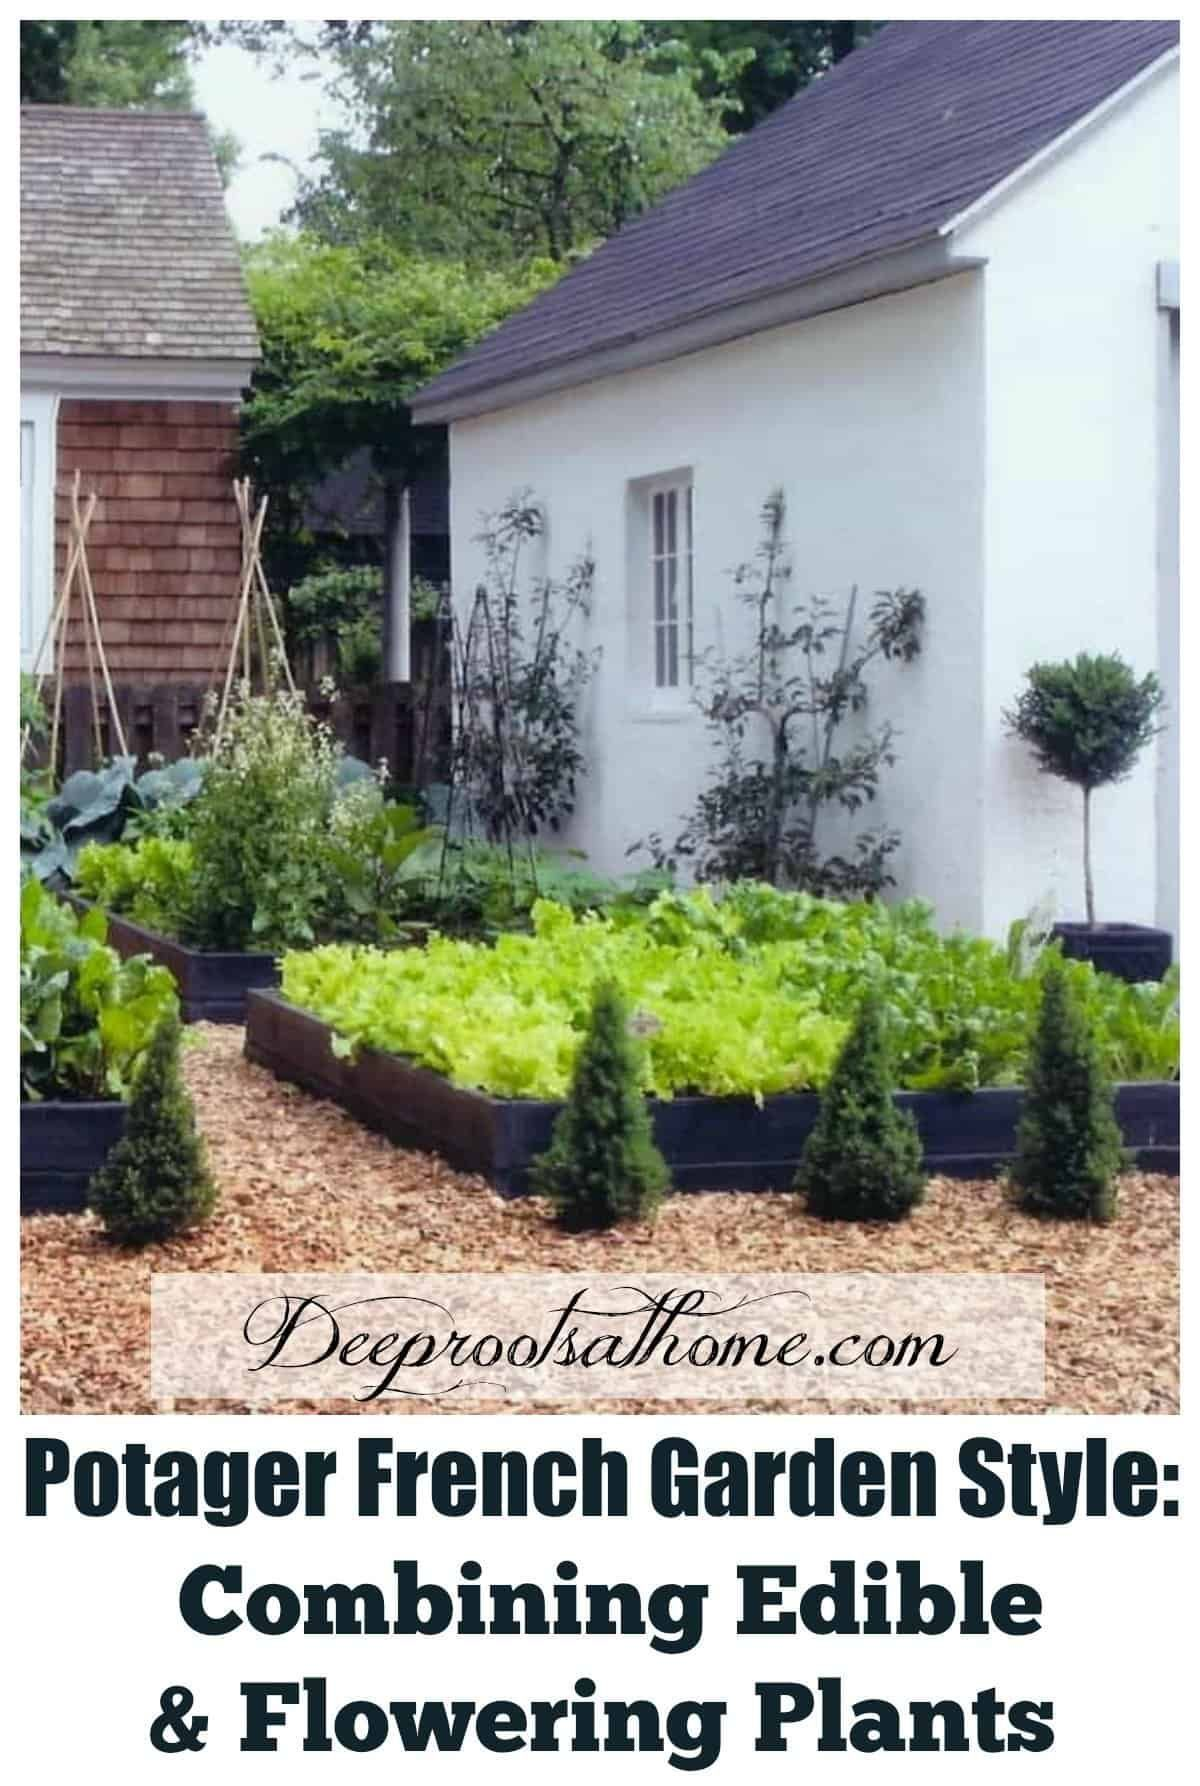 Potager French Garden Style: Combining Edible amp; Flowering Plants. #garden #food #homedecor #home...